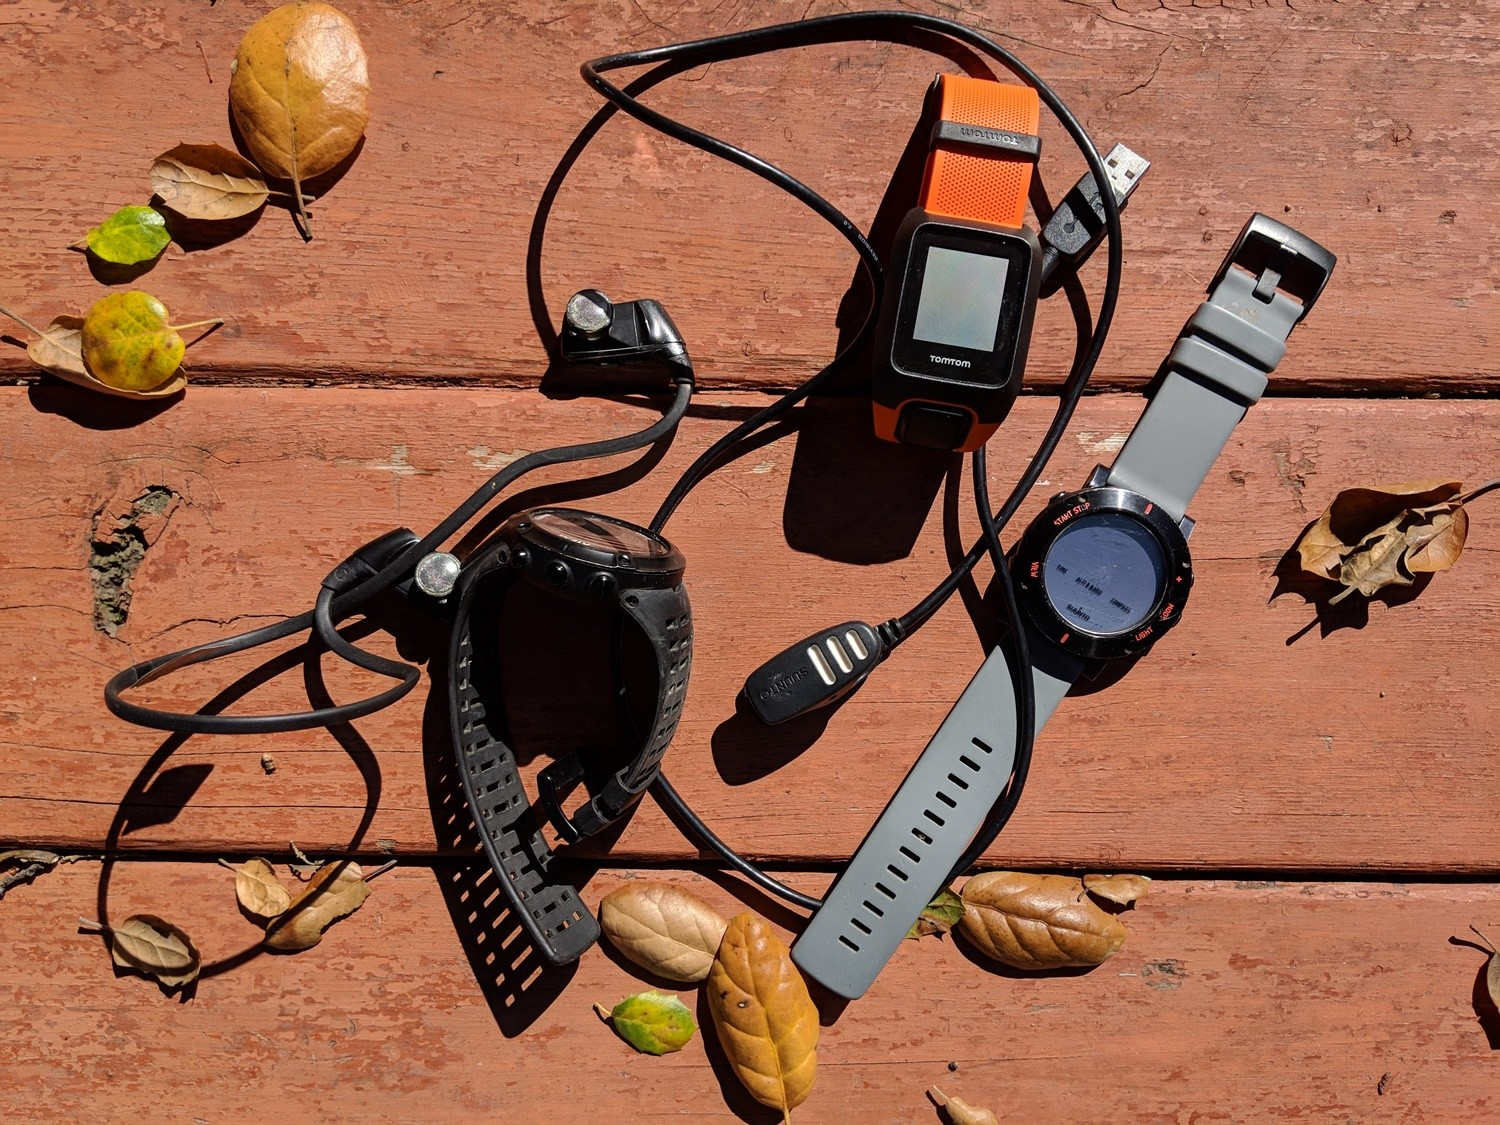 Battery life, size, and fit are all important considerations when choosing an altimeter watch.